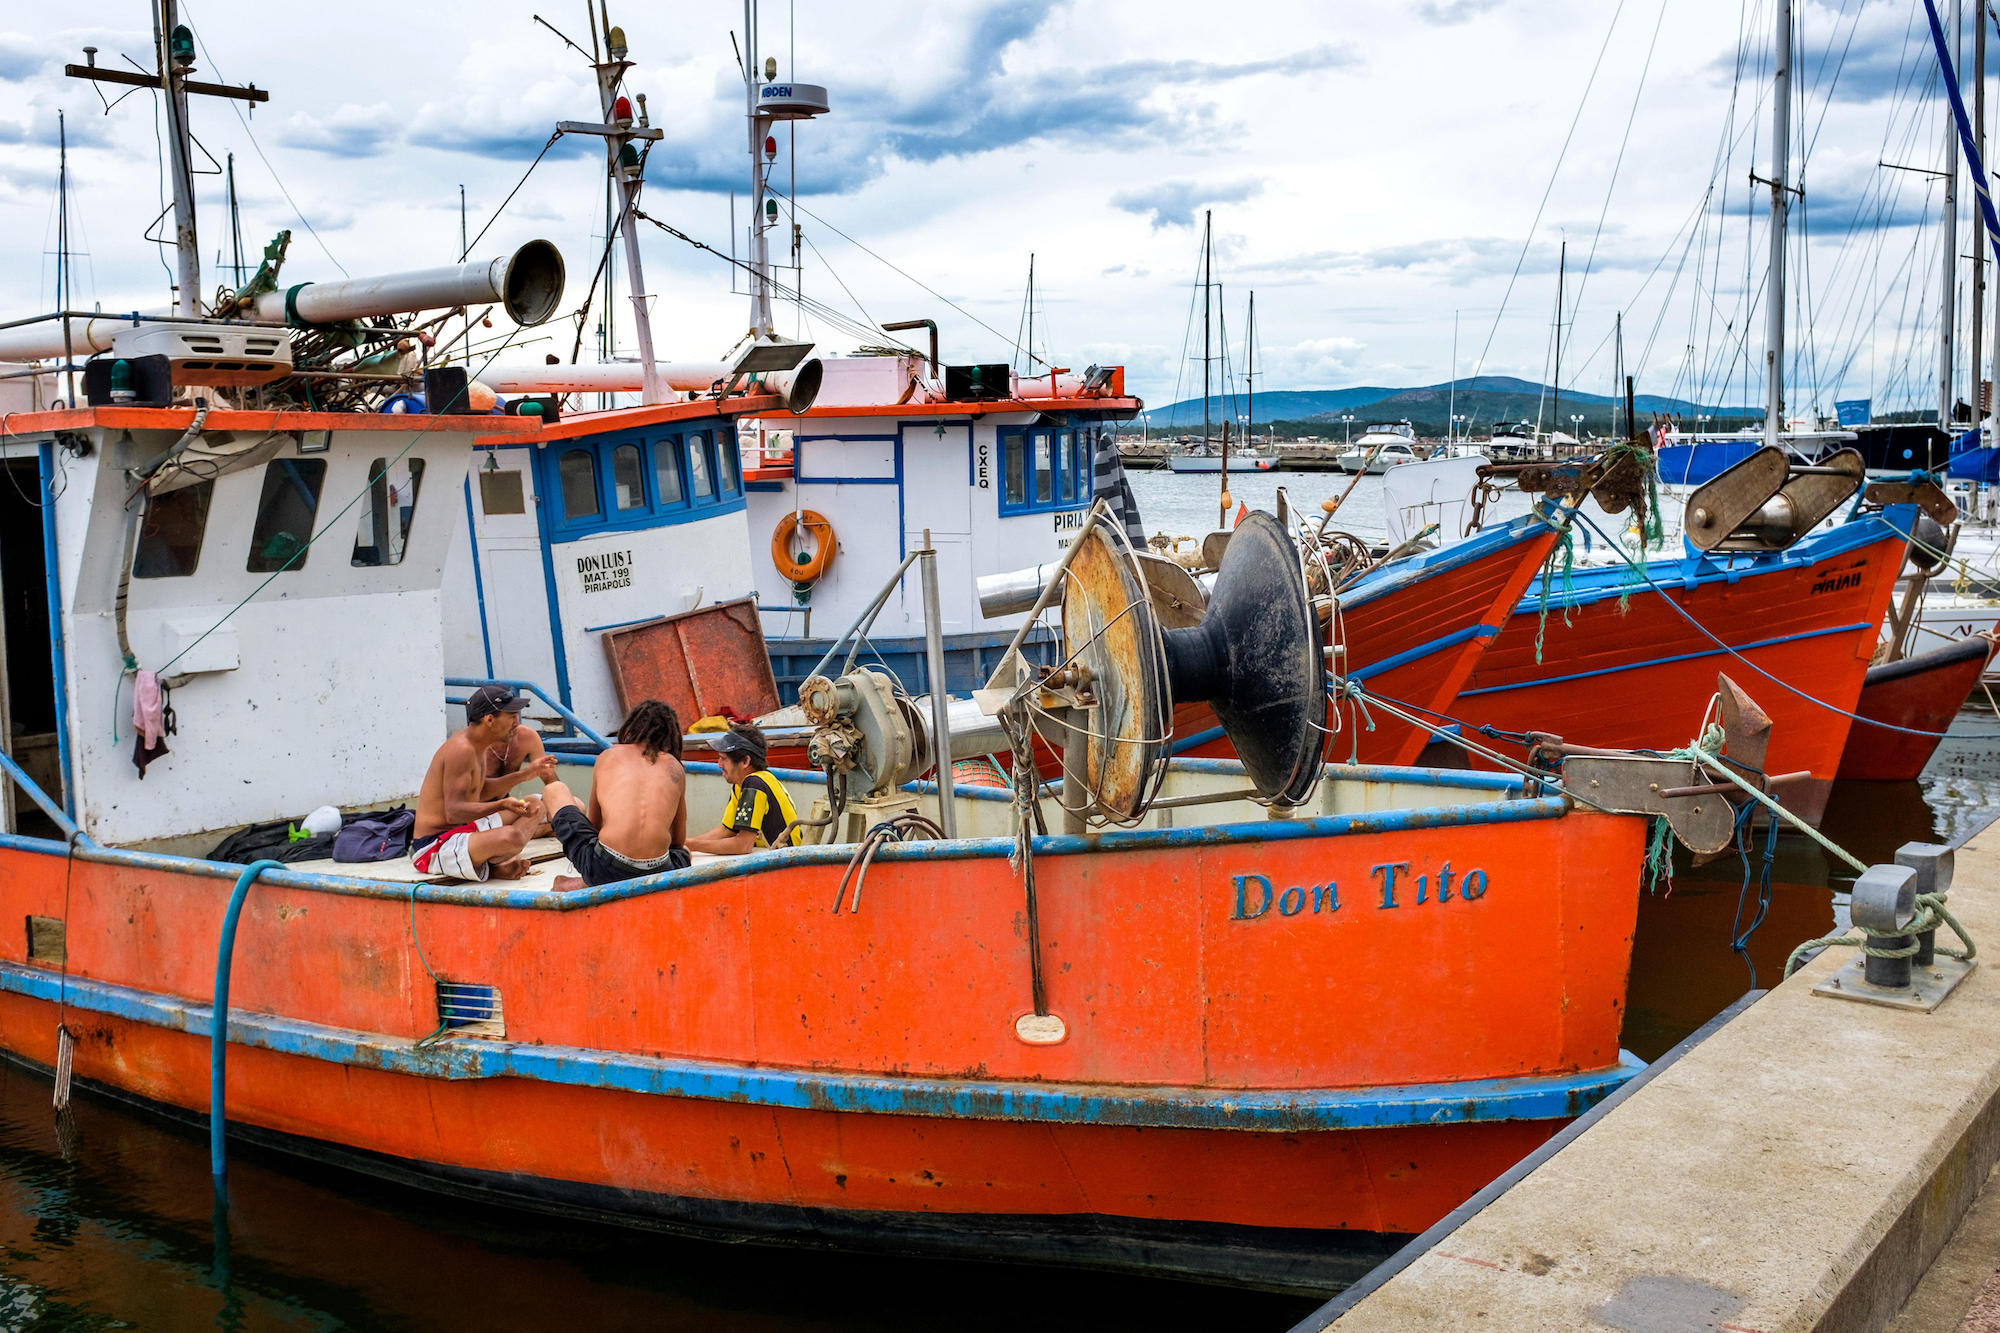 Uruguay, Piriapolis: Situated in the Maldonado Department, it?s one of the main seaside resorts in the country. Traditional fishing boats in the harbo